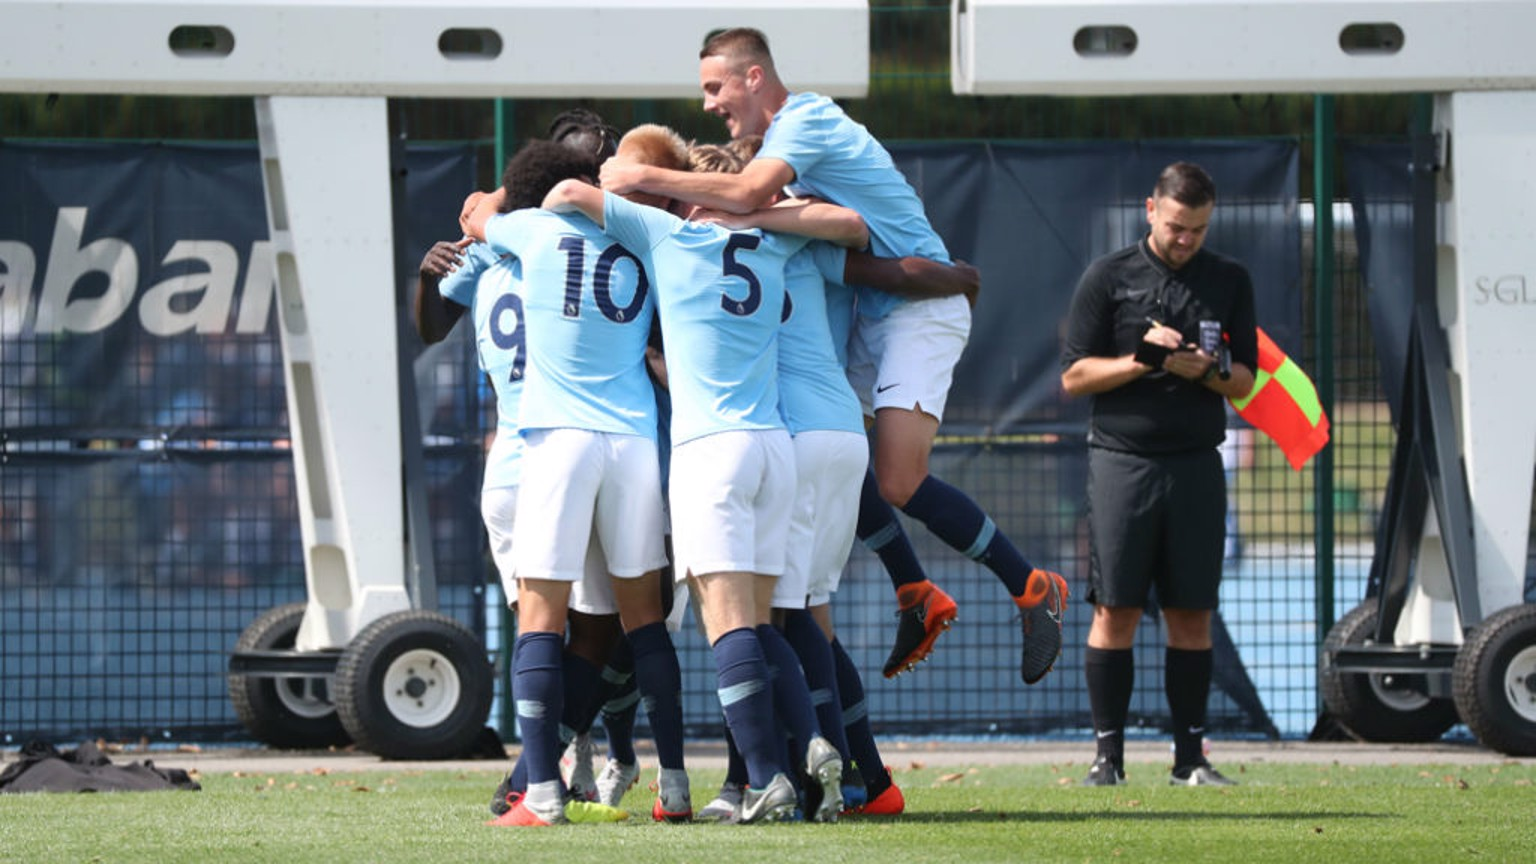 City's Under 18s fought out a 1-1 draw away at Blackburn